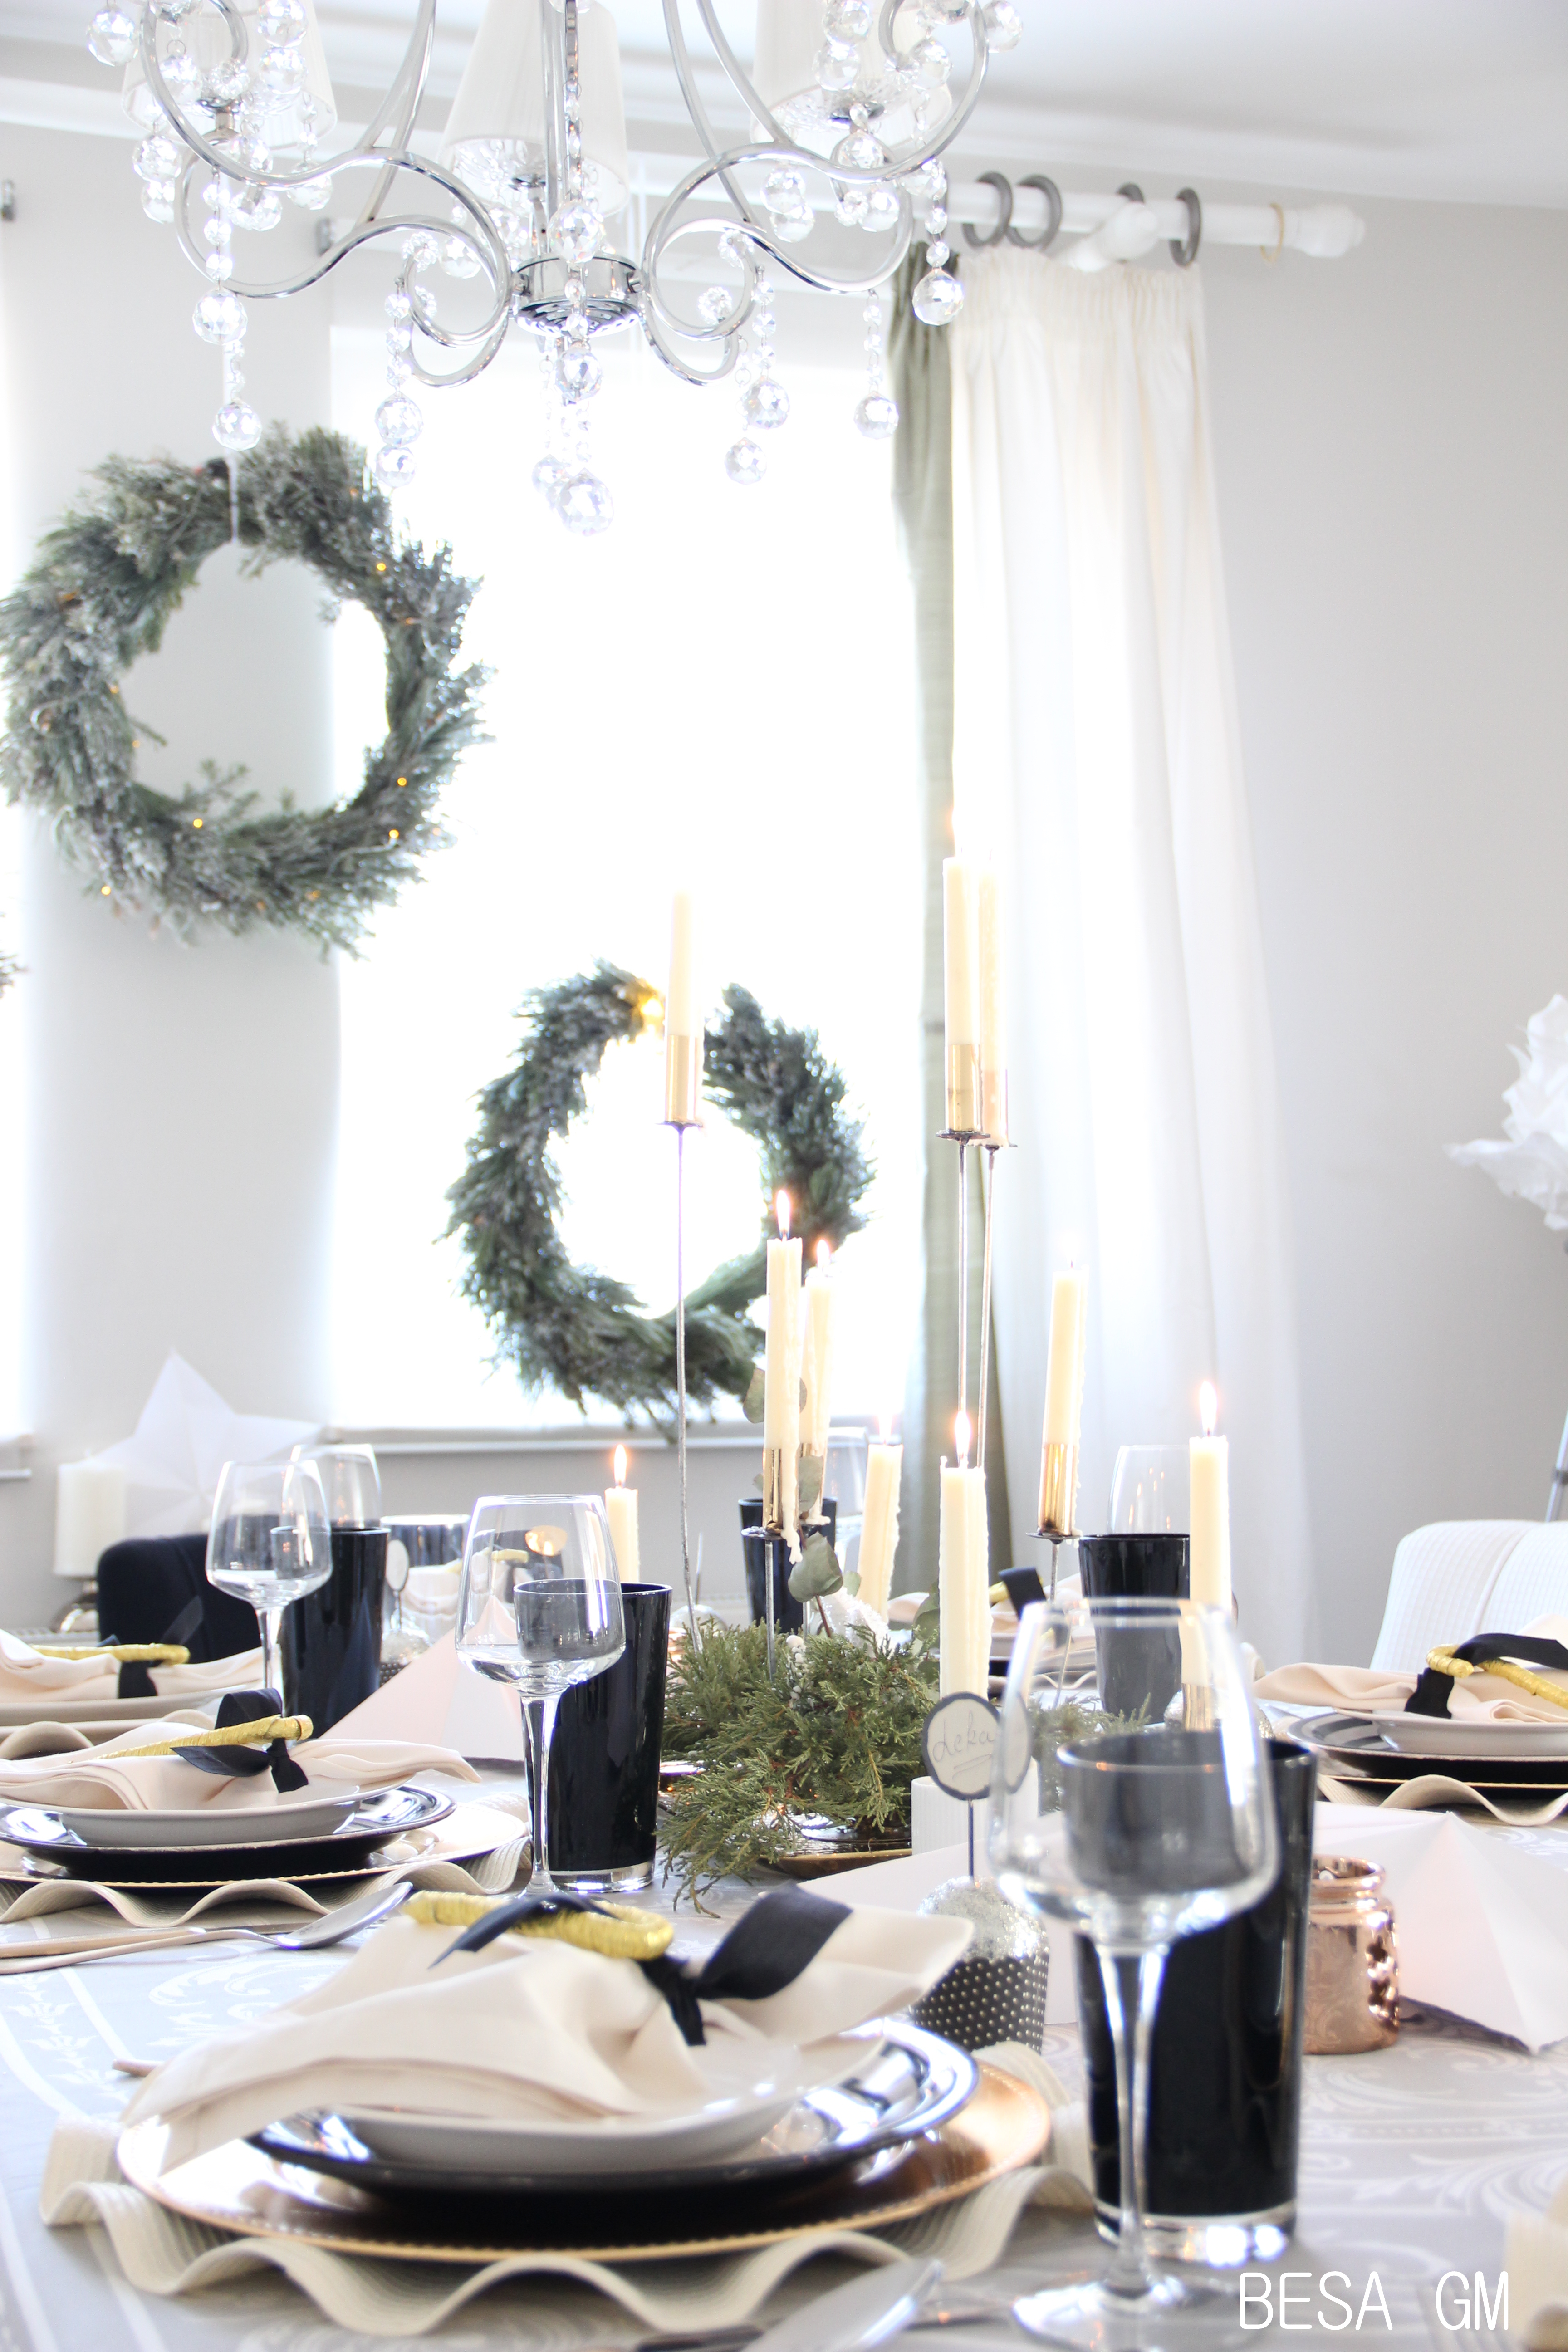 December 2016 besa gm so this is how i created this table setting concept for these holidays and i am over exited with the look i achieved and also hope that my guests are going solutioingenieria Gallery